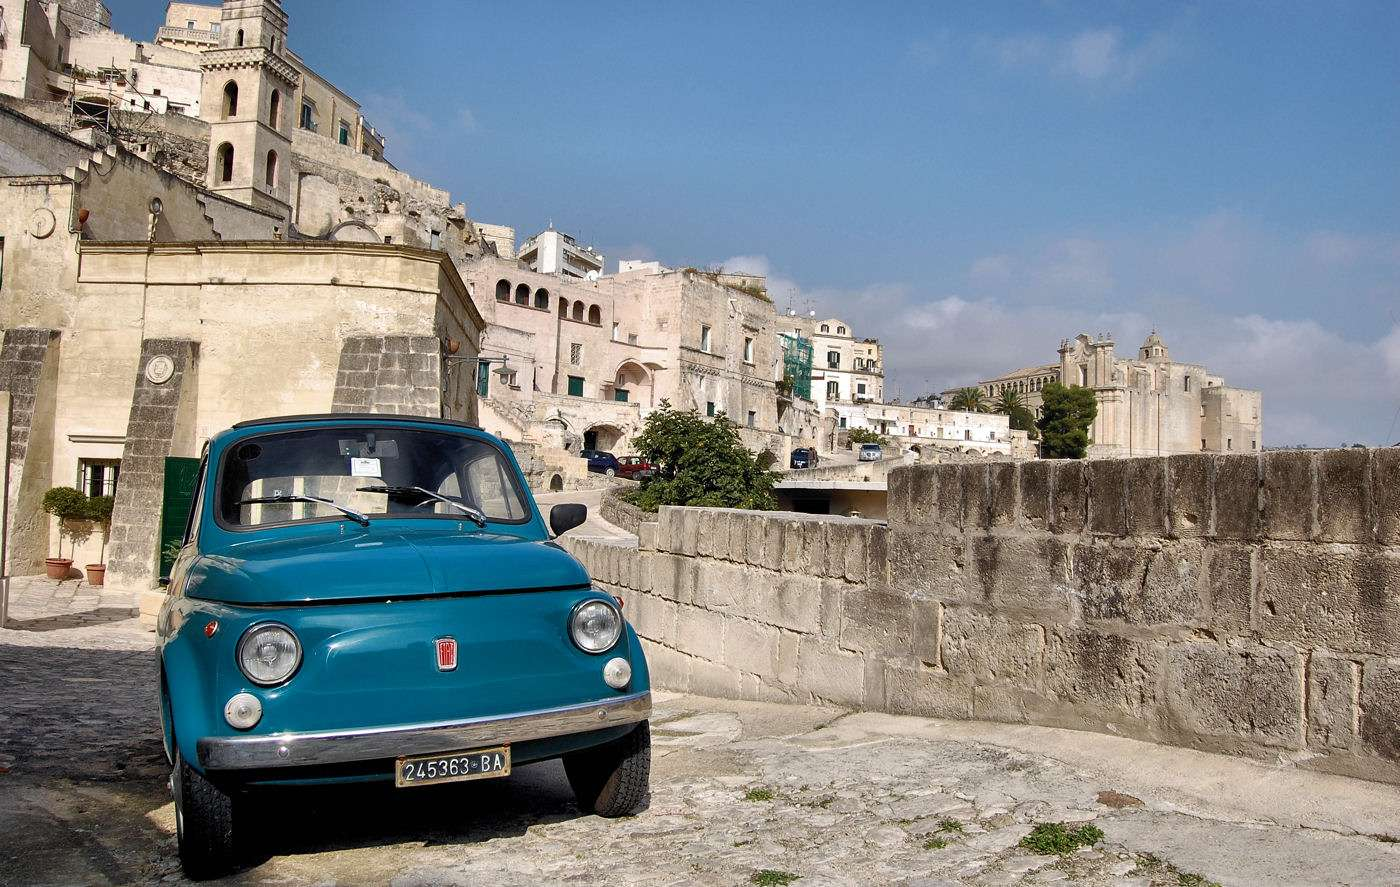 Classic Fiat 500 in the historic city of Matera